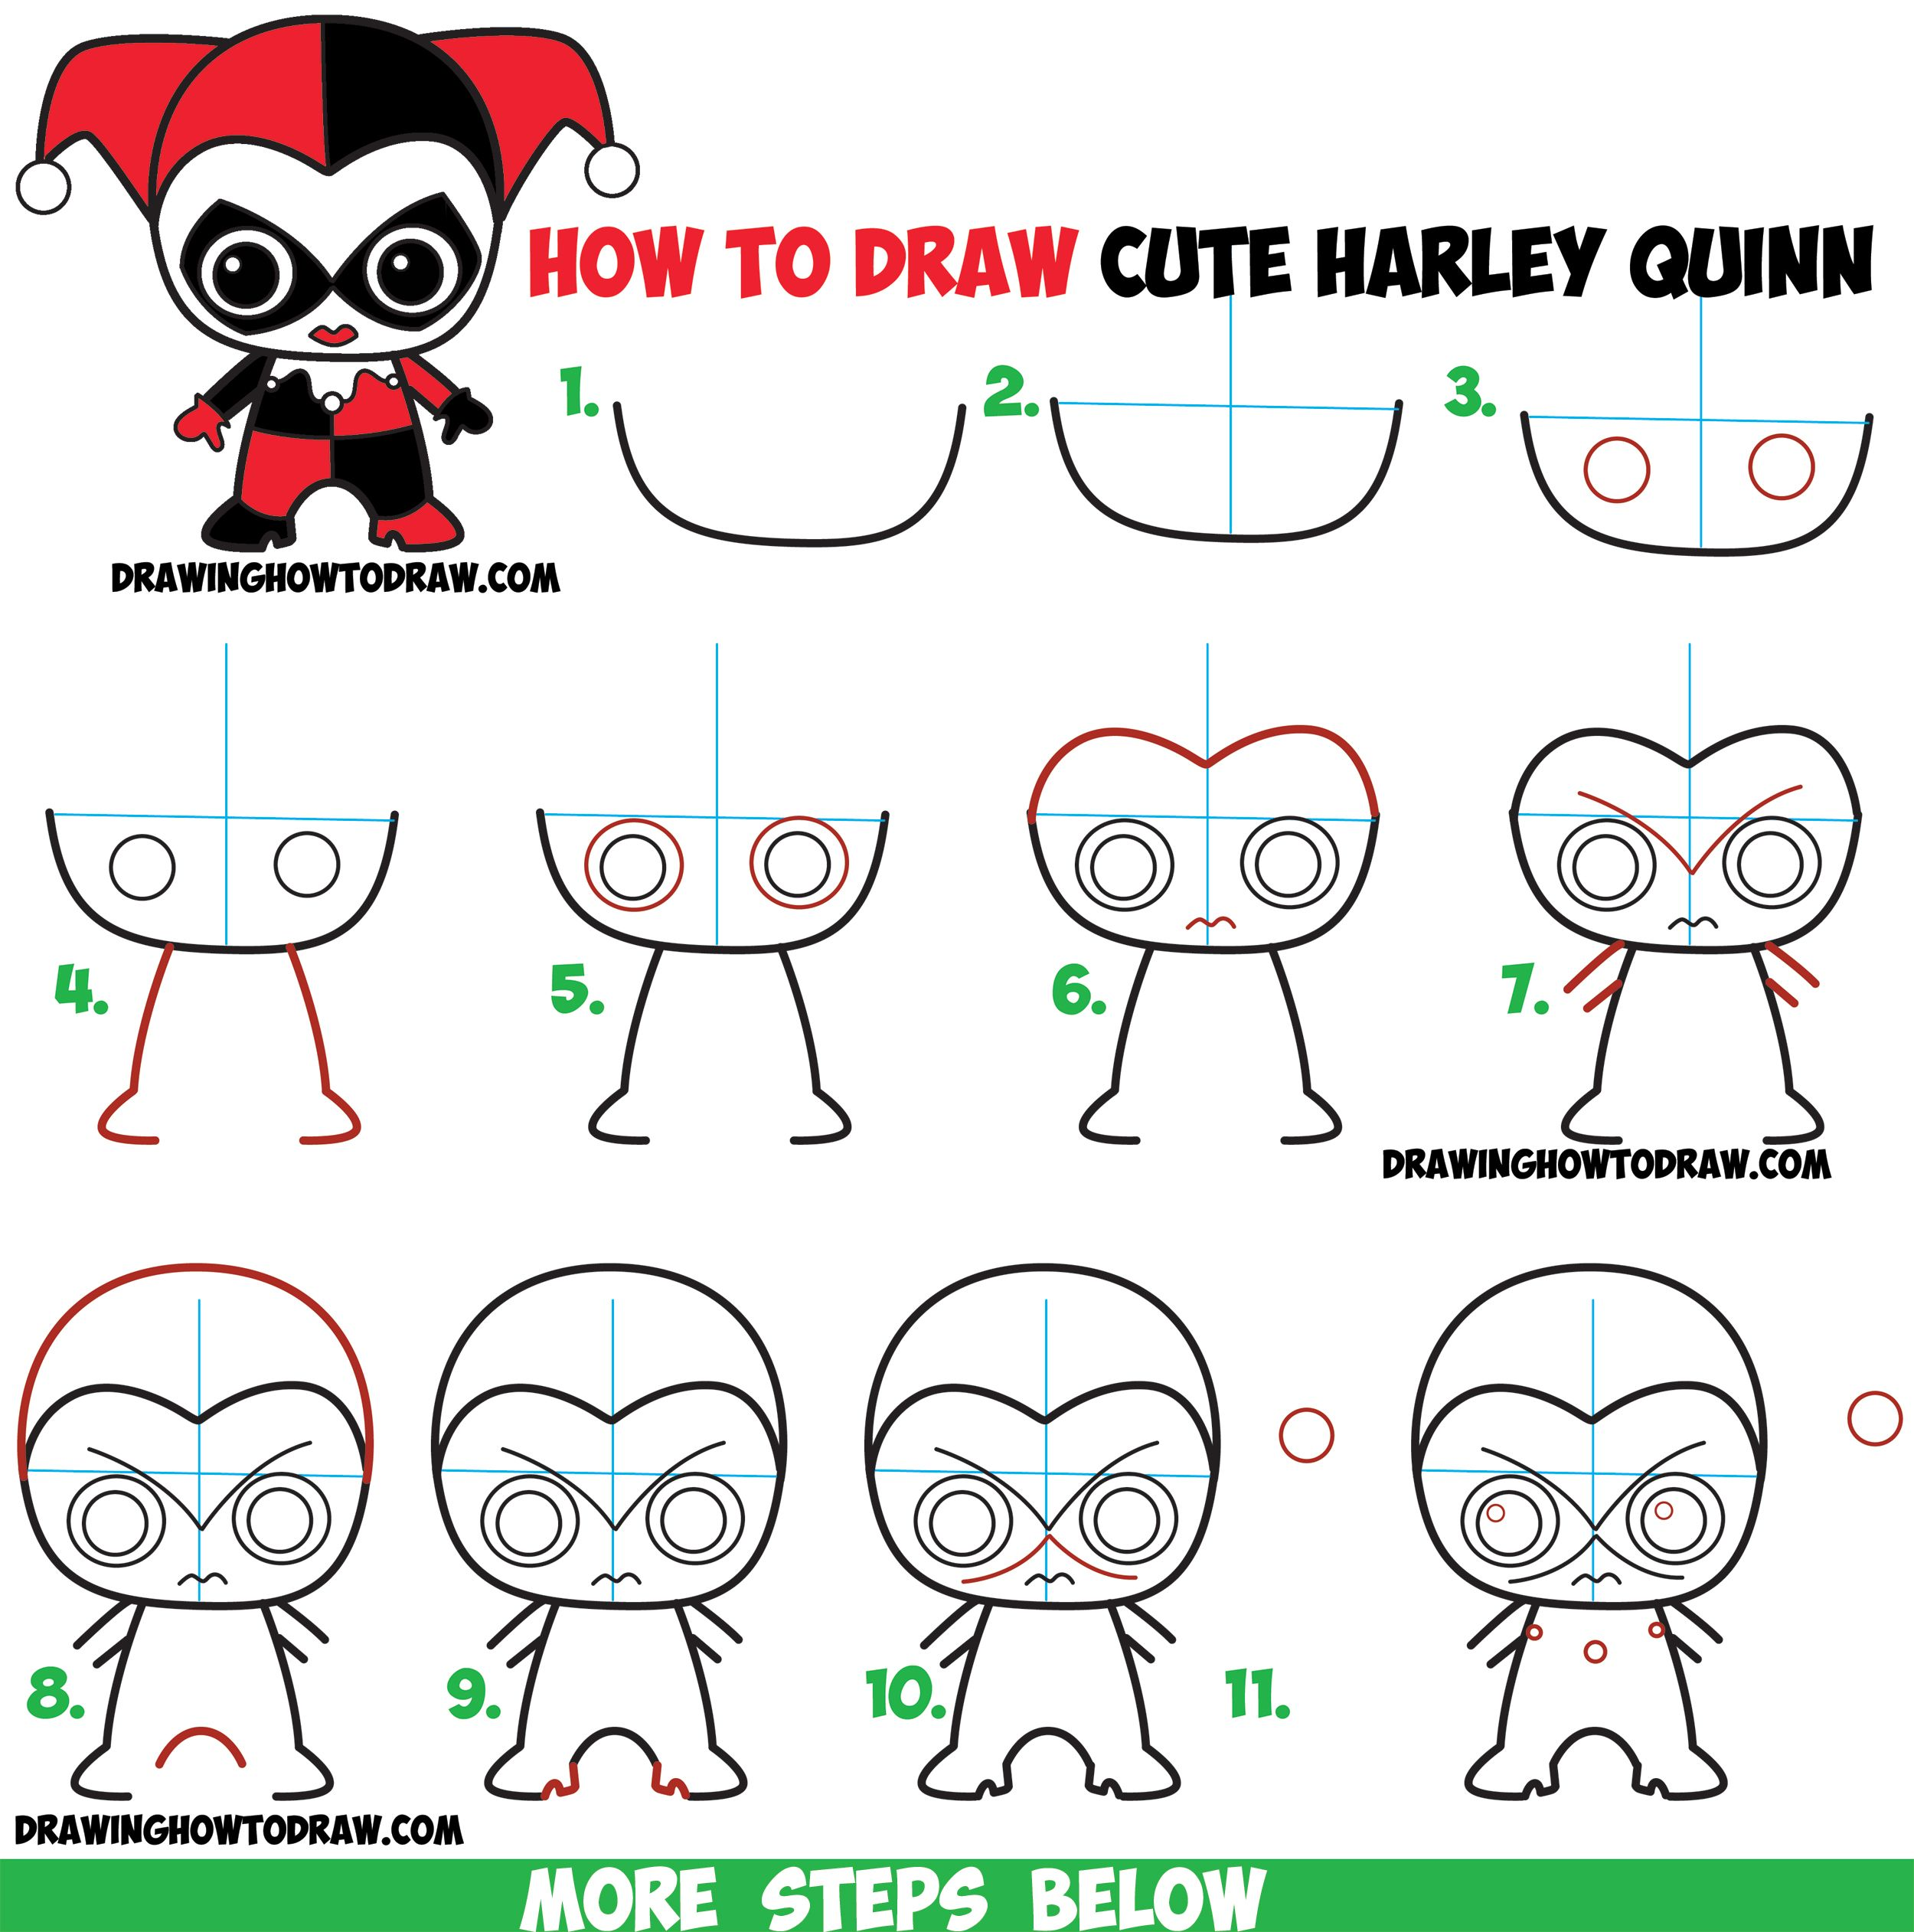 How to draw cute chibi harley quinn from dc comics in easy for Drawing ideas for beginners step by step